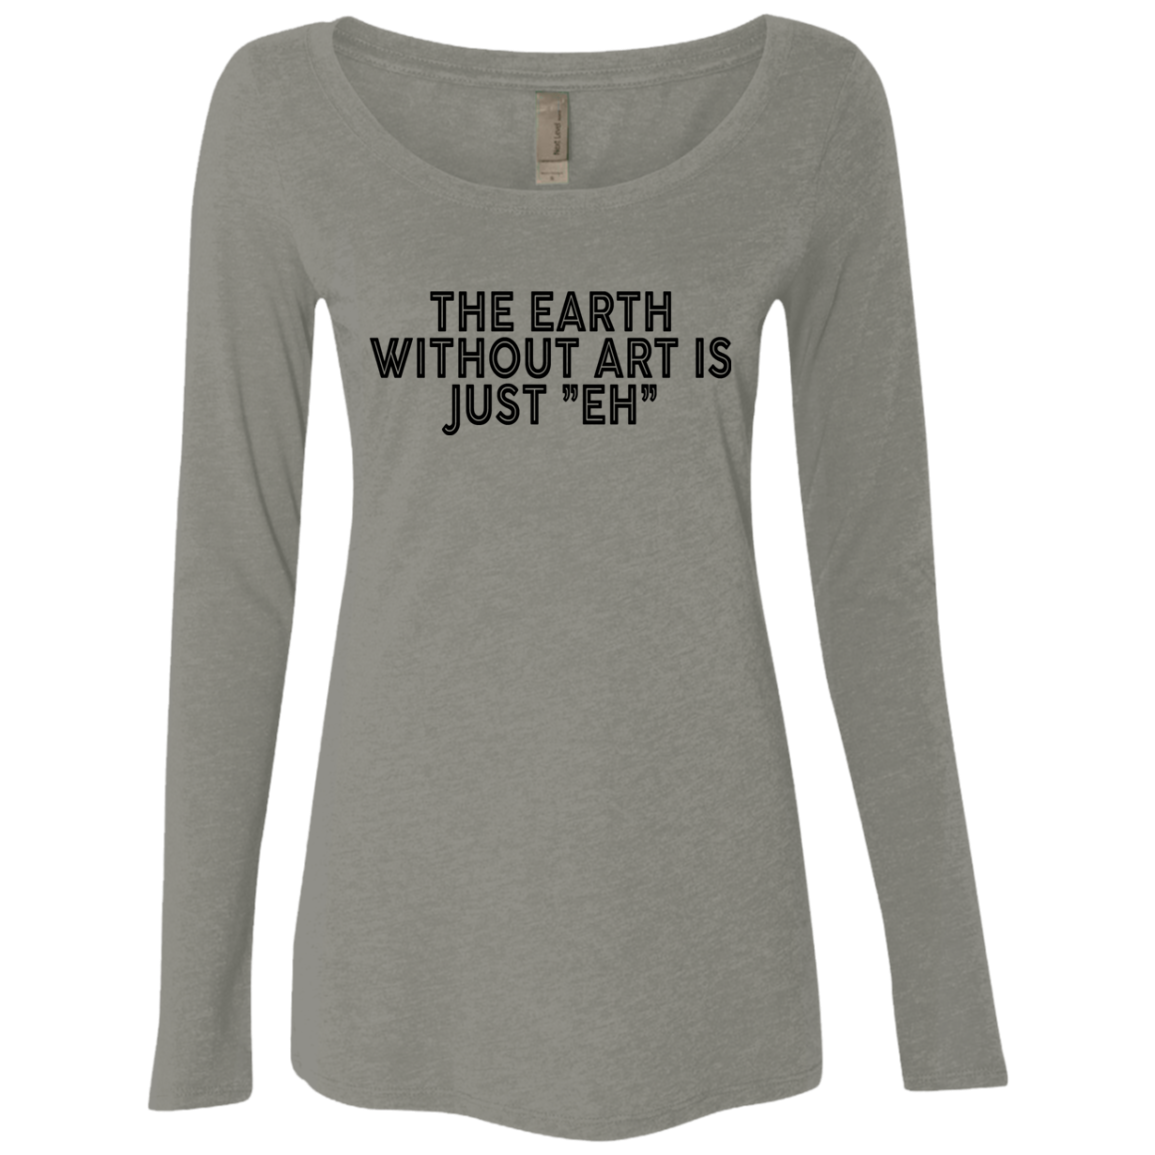 The Earth Without Art Is Just Eh Women's Long Sleeve Tee